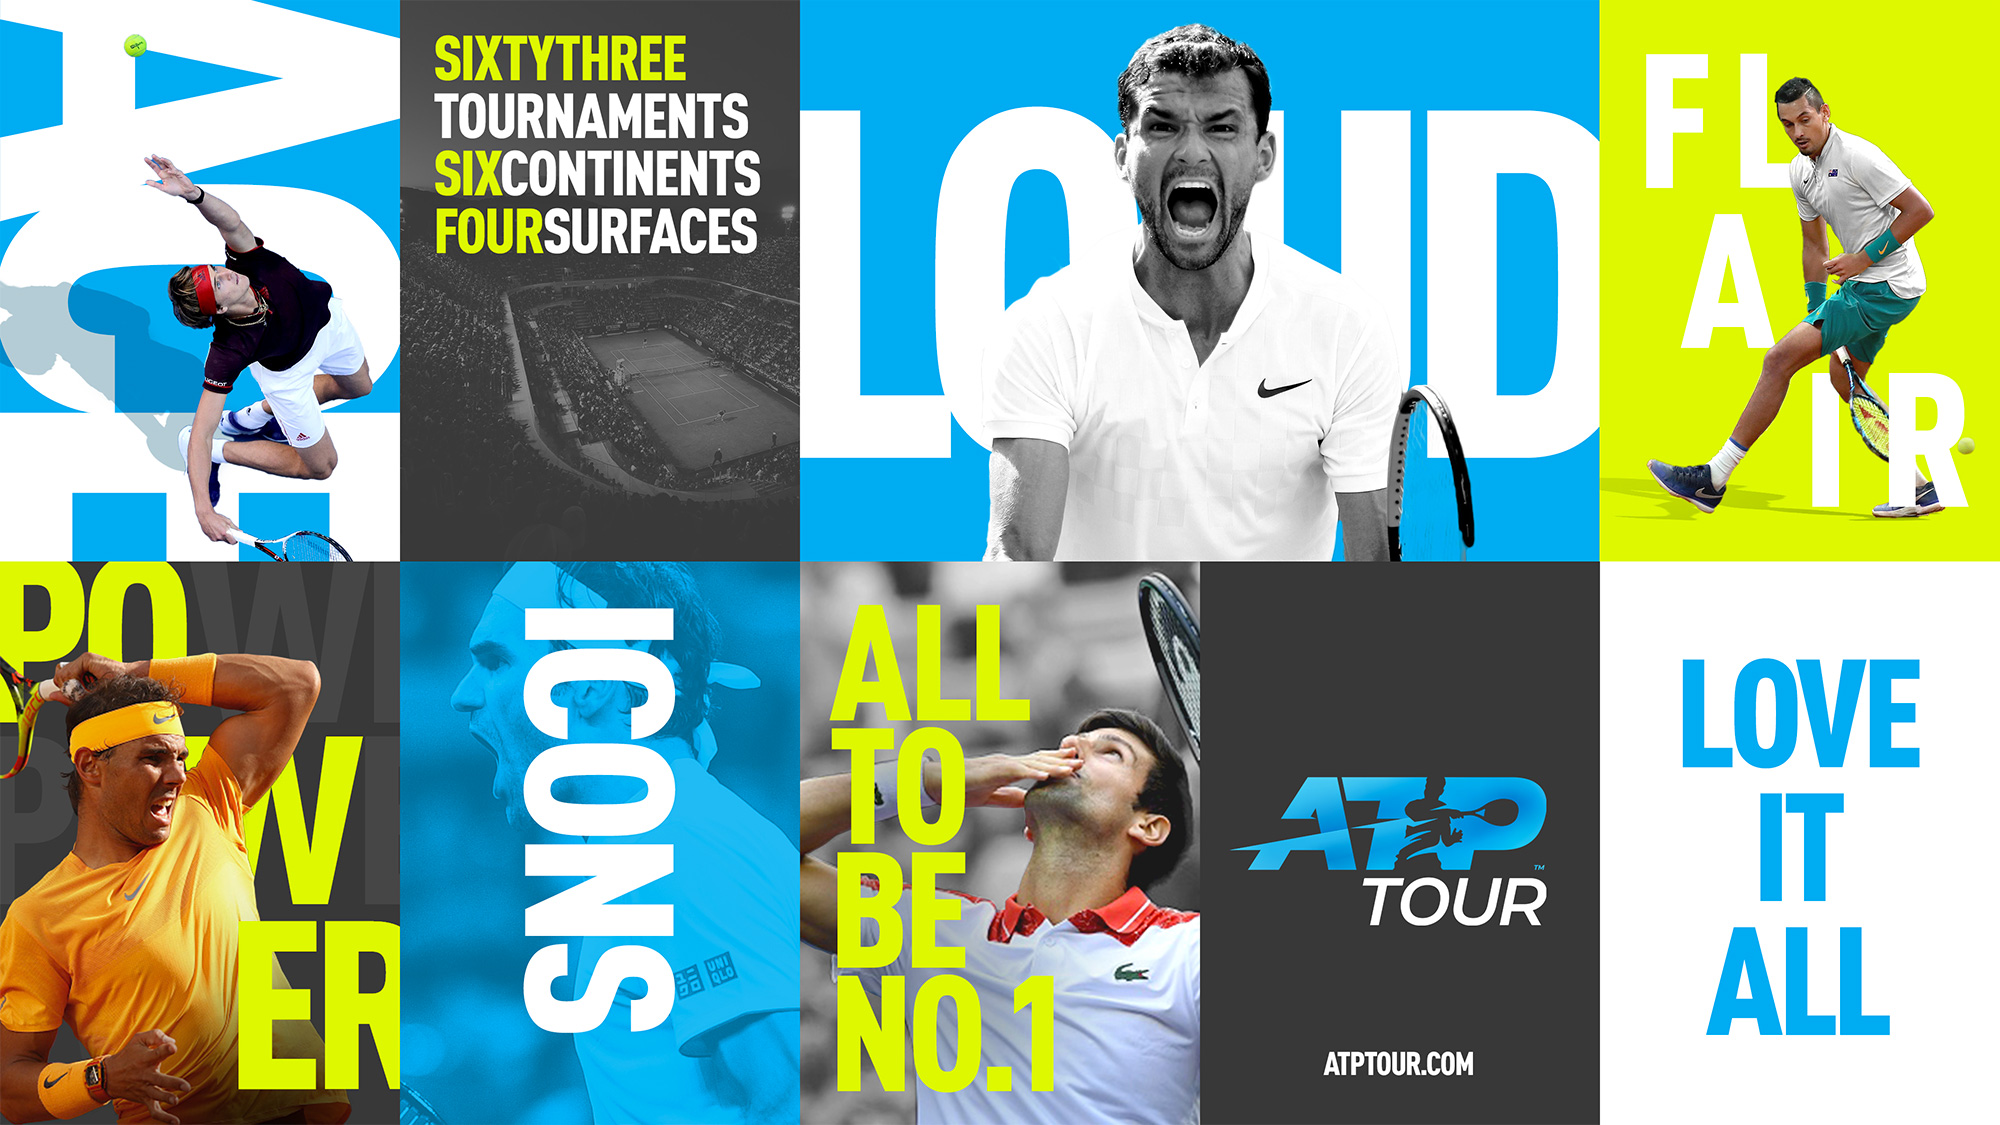 New Logo and Identity for ATP Tour by Matta